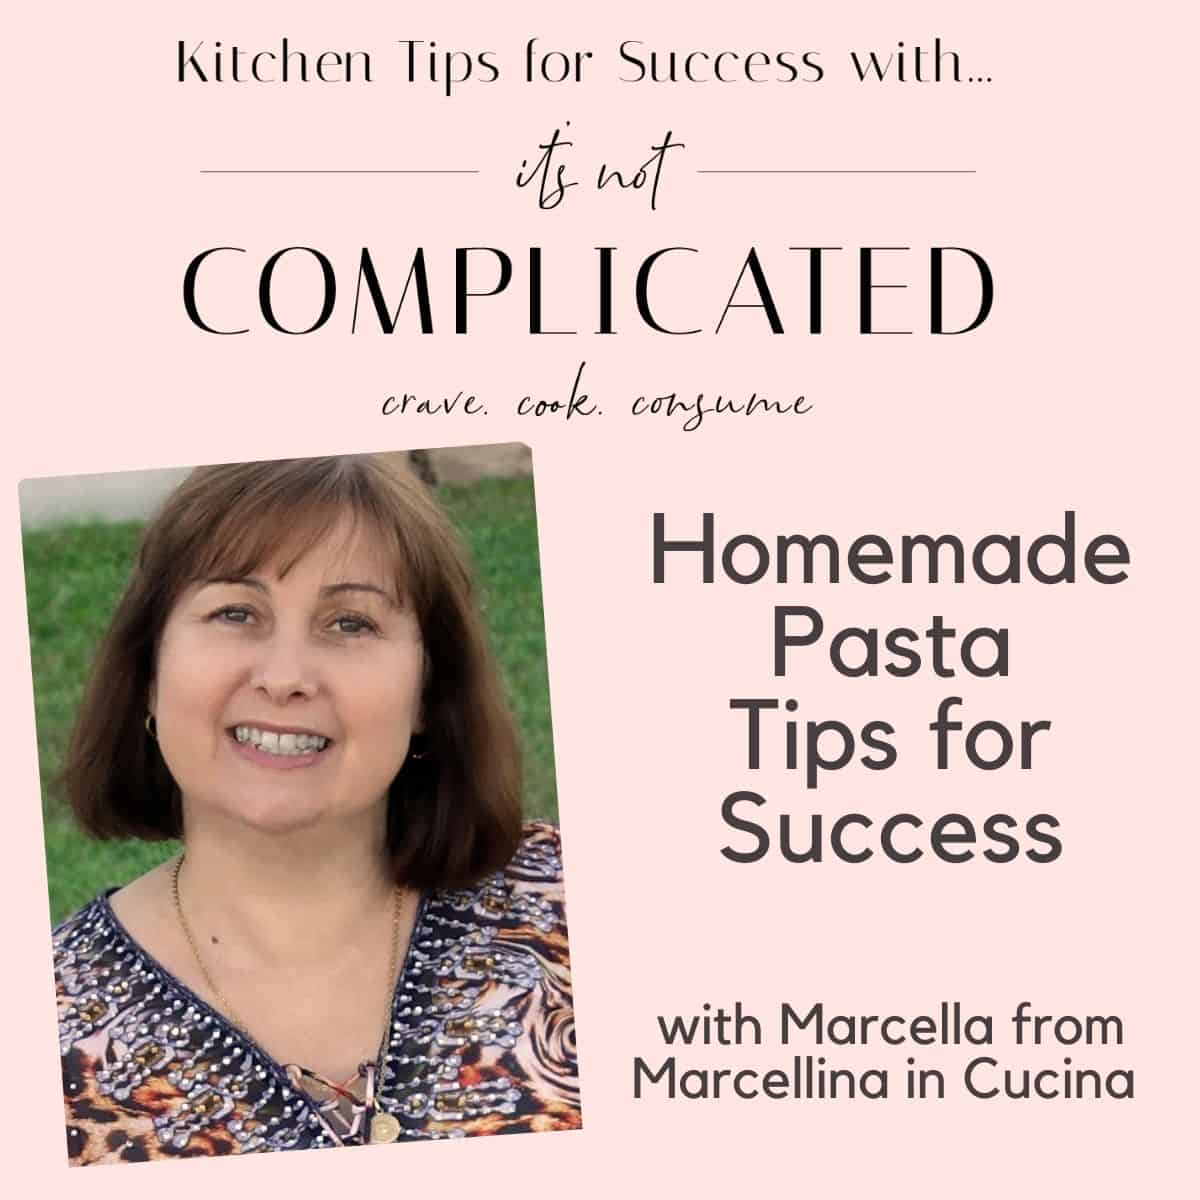 poster of Marcella for Kitchen Tips on homemade pasta